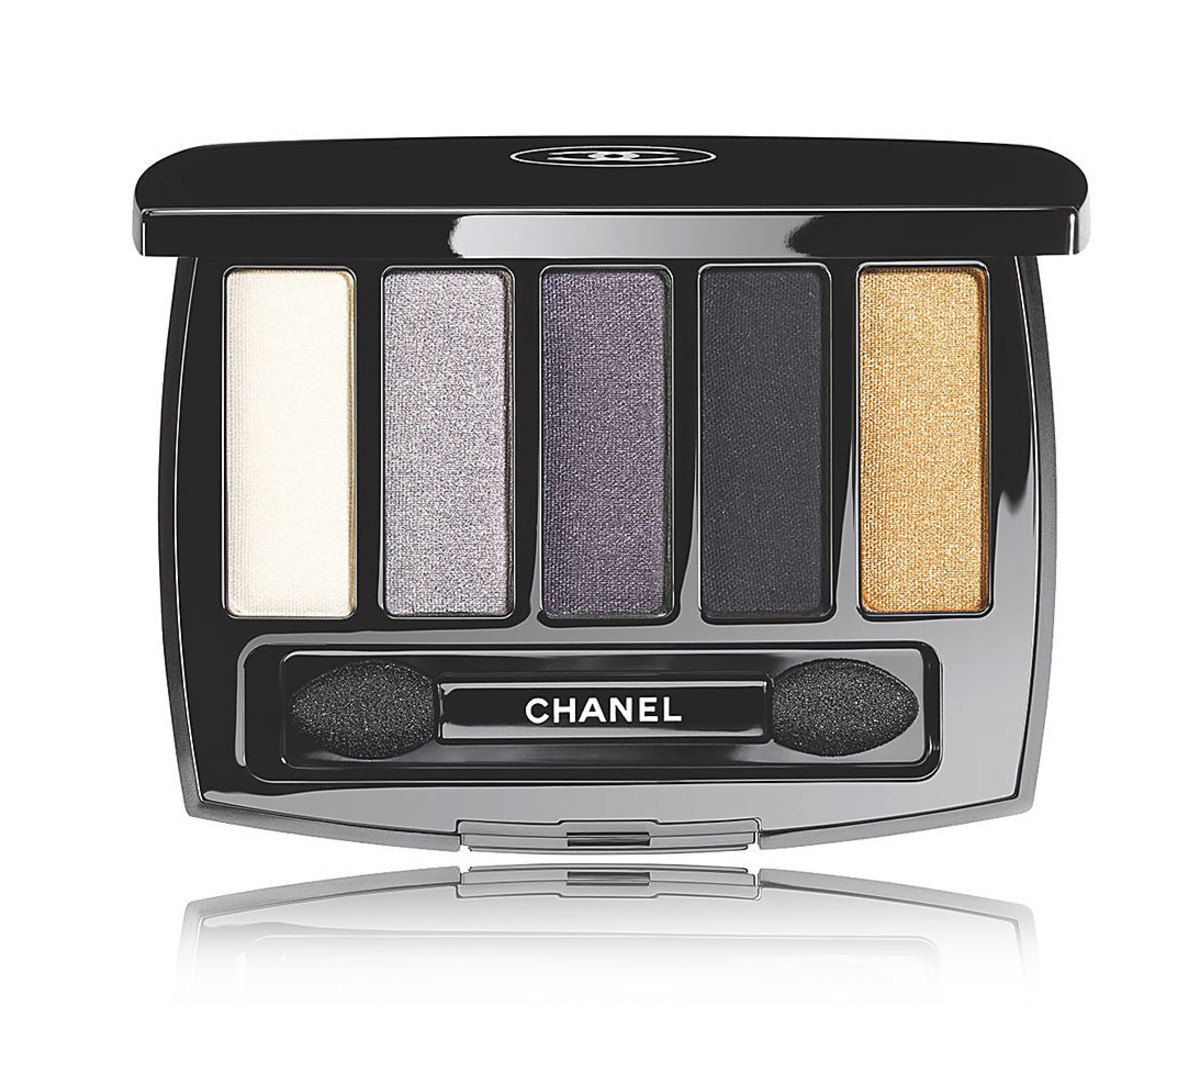 Chanel Les 5 Ombres de Chanel Eyeshadow Palette